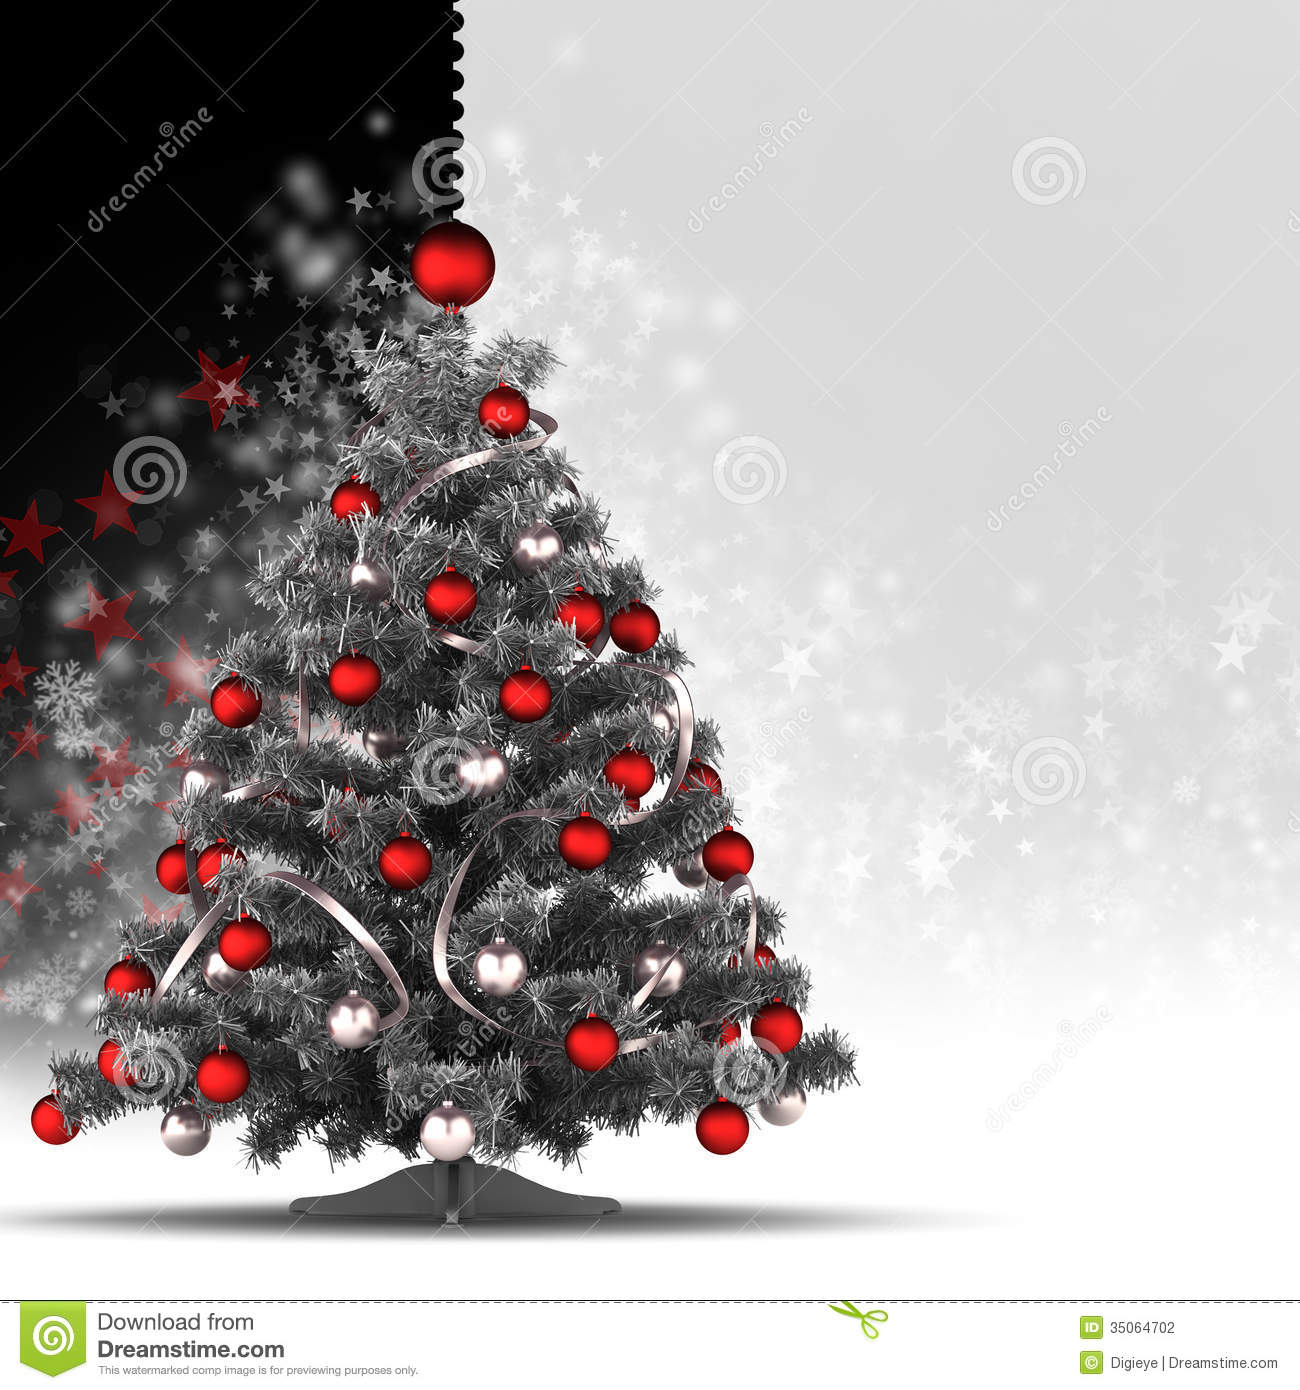 15 black and white christmas card templates psd images free black and white christmas cards for Christmas card template for photographers